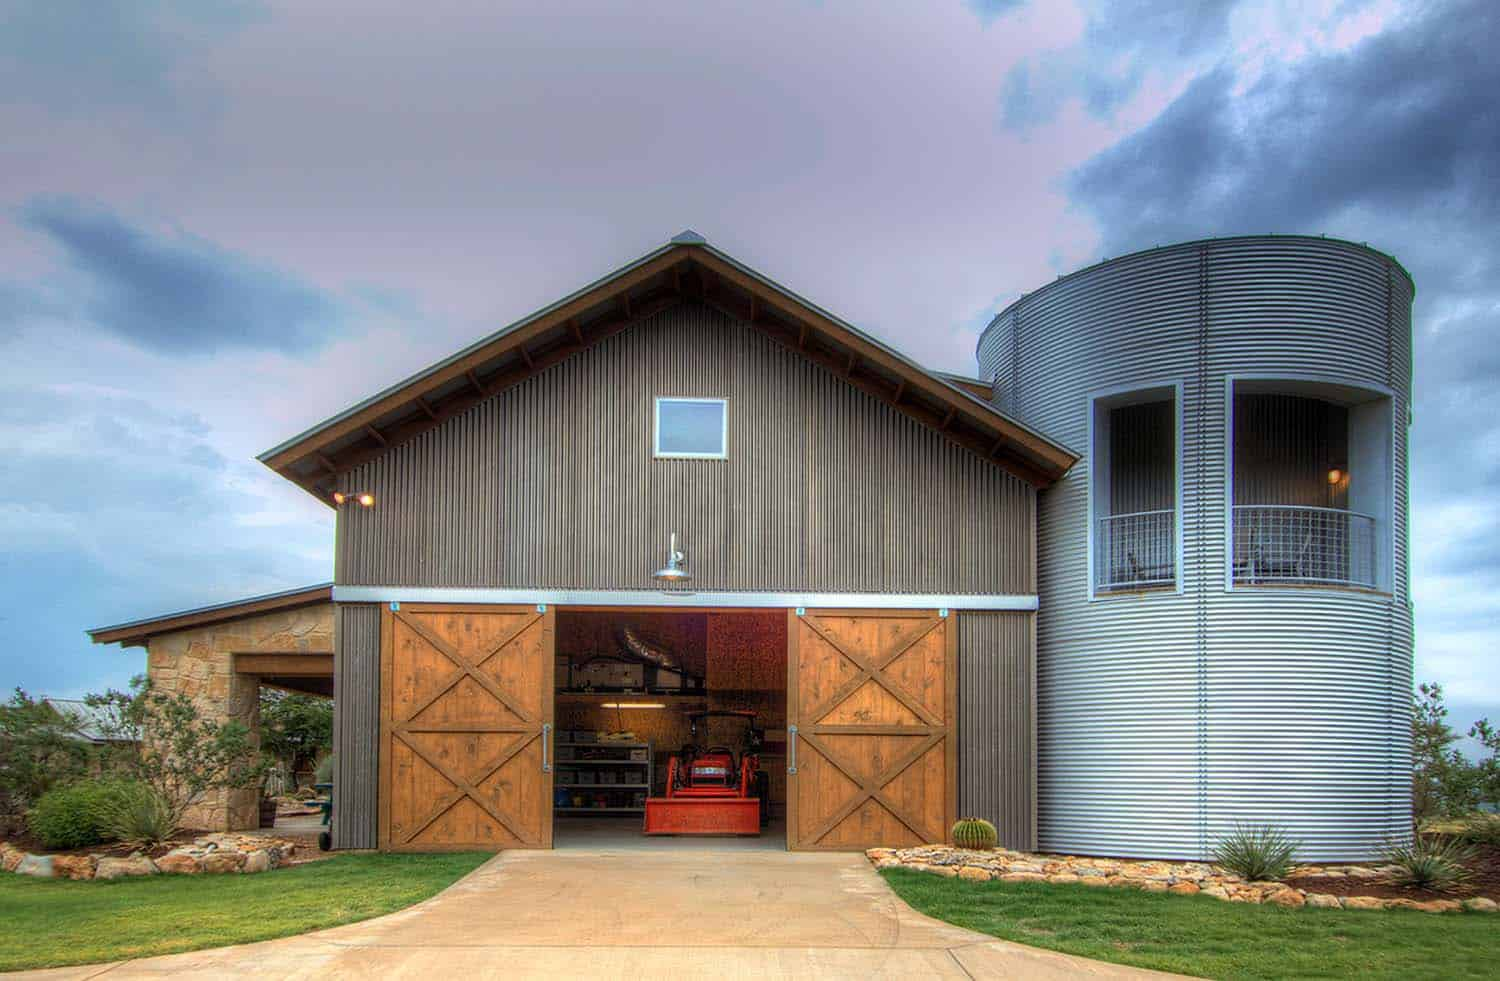 Rustic ranch house designed for family gatherings in texas for Texas pole barns